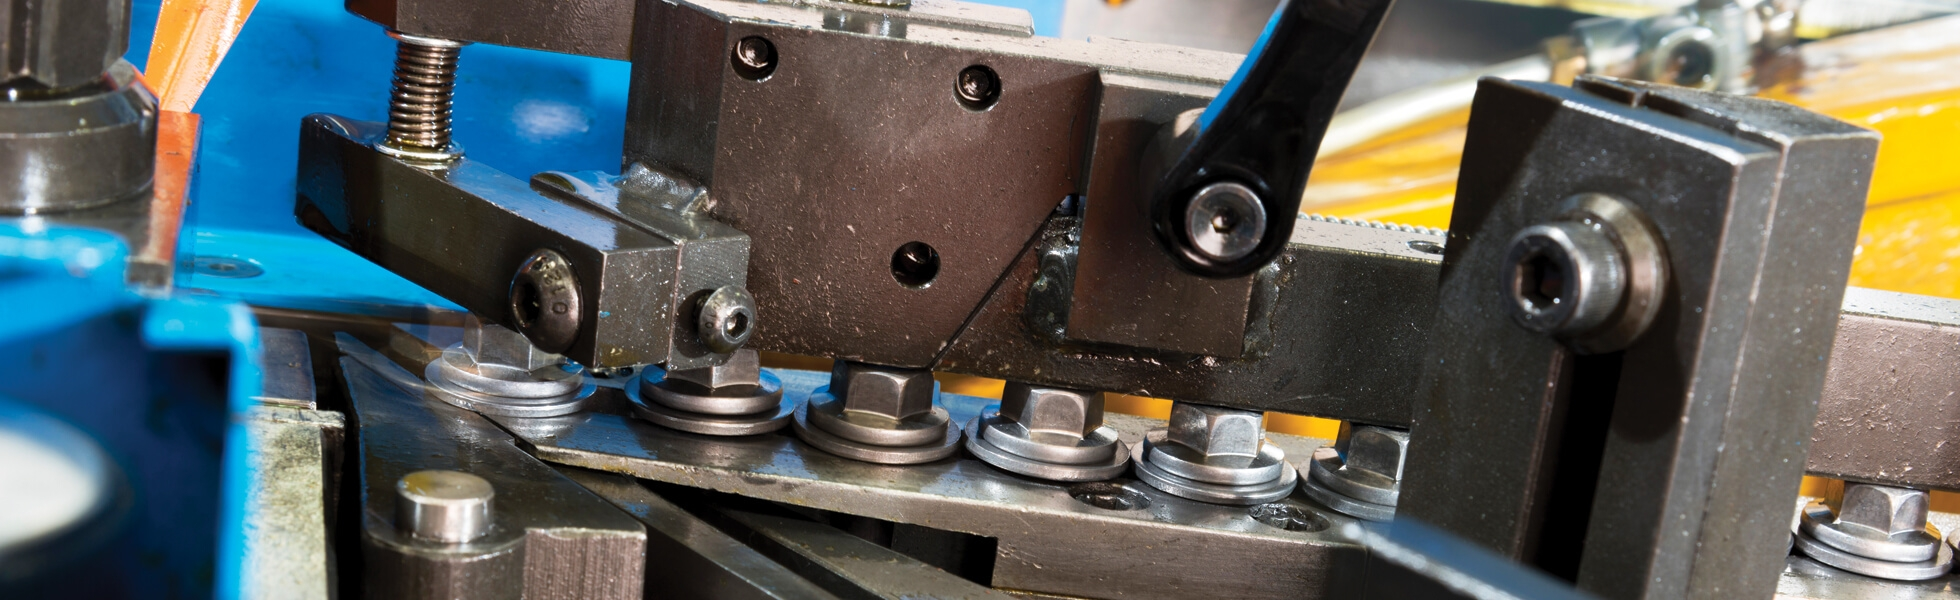 Optimas Solutions Manufacturing